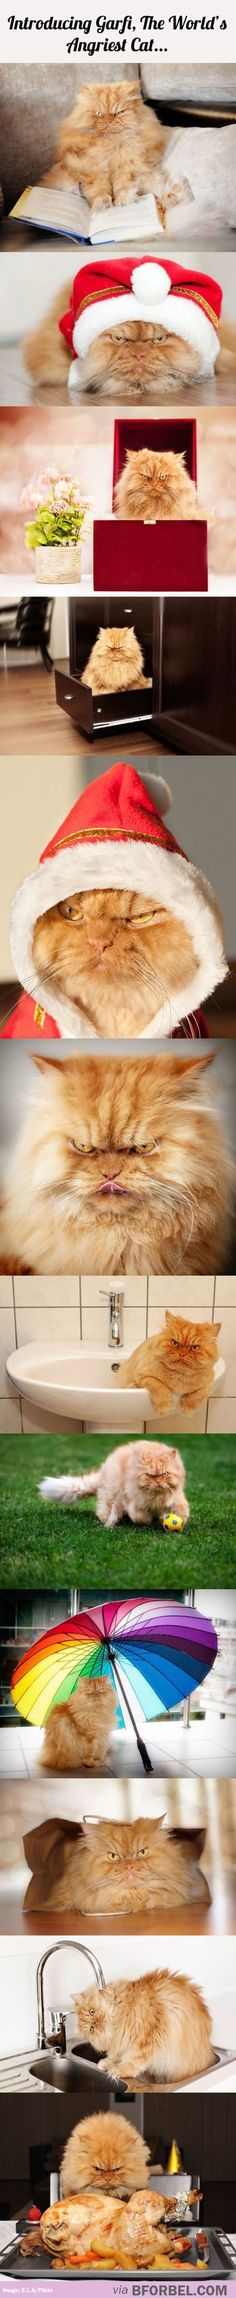 AngryGarfi Garfi The Angriest Cat In The World Pinterest - Garfi is officially the worlds angriest cat